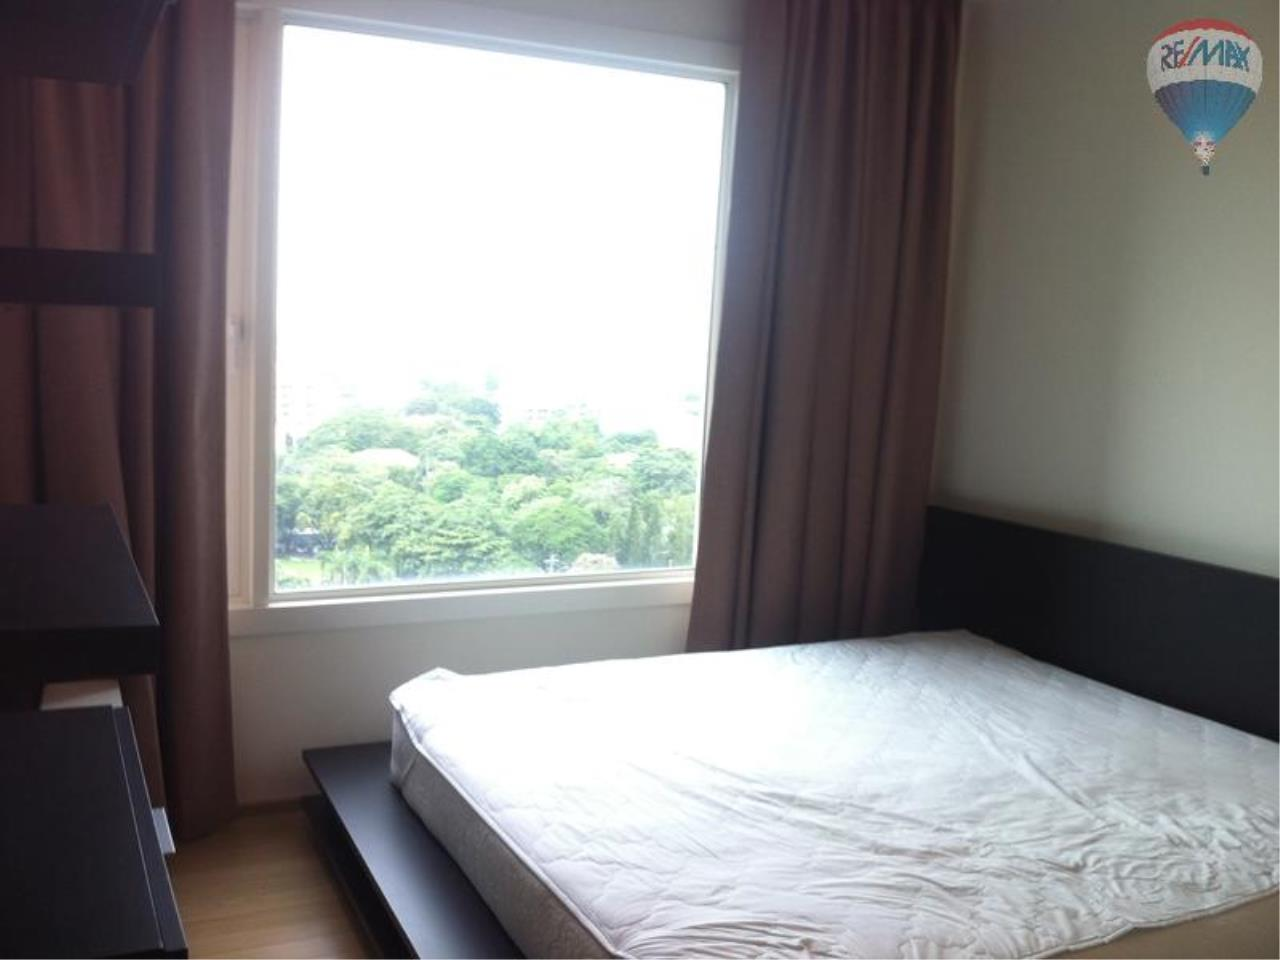 RE/MAX Properties Agency's 2 Bedroom 68.62 for Rent at Siri @ Sukhumvit 6